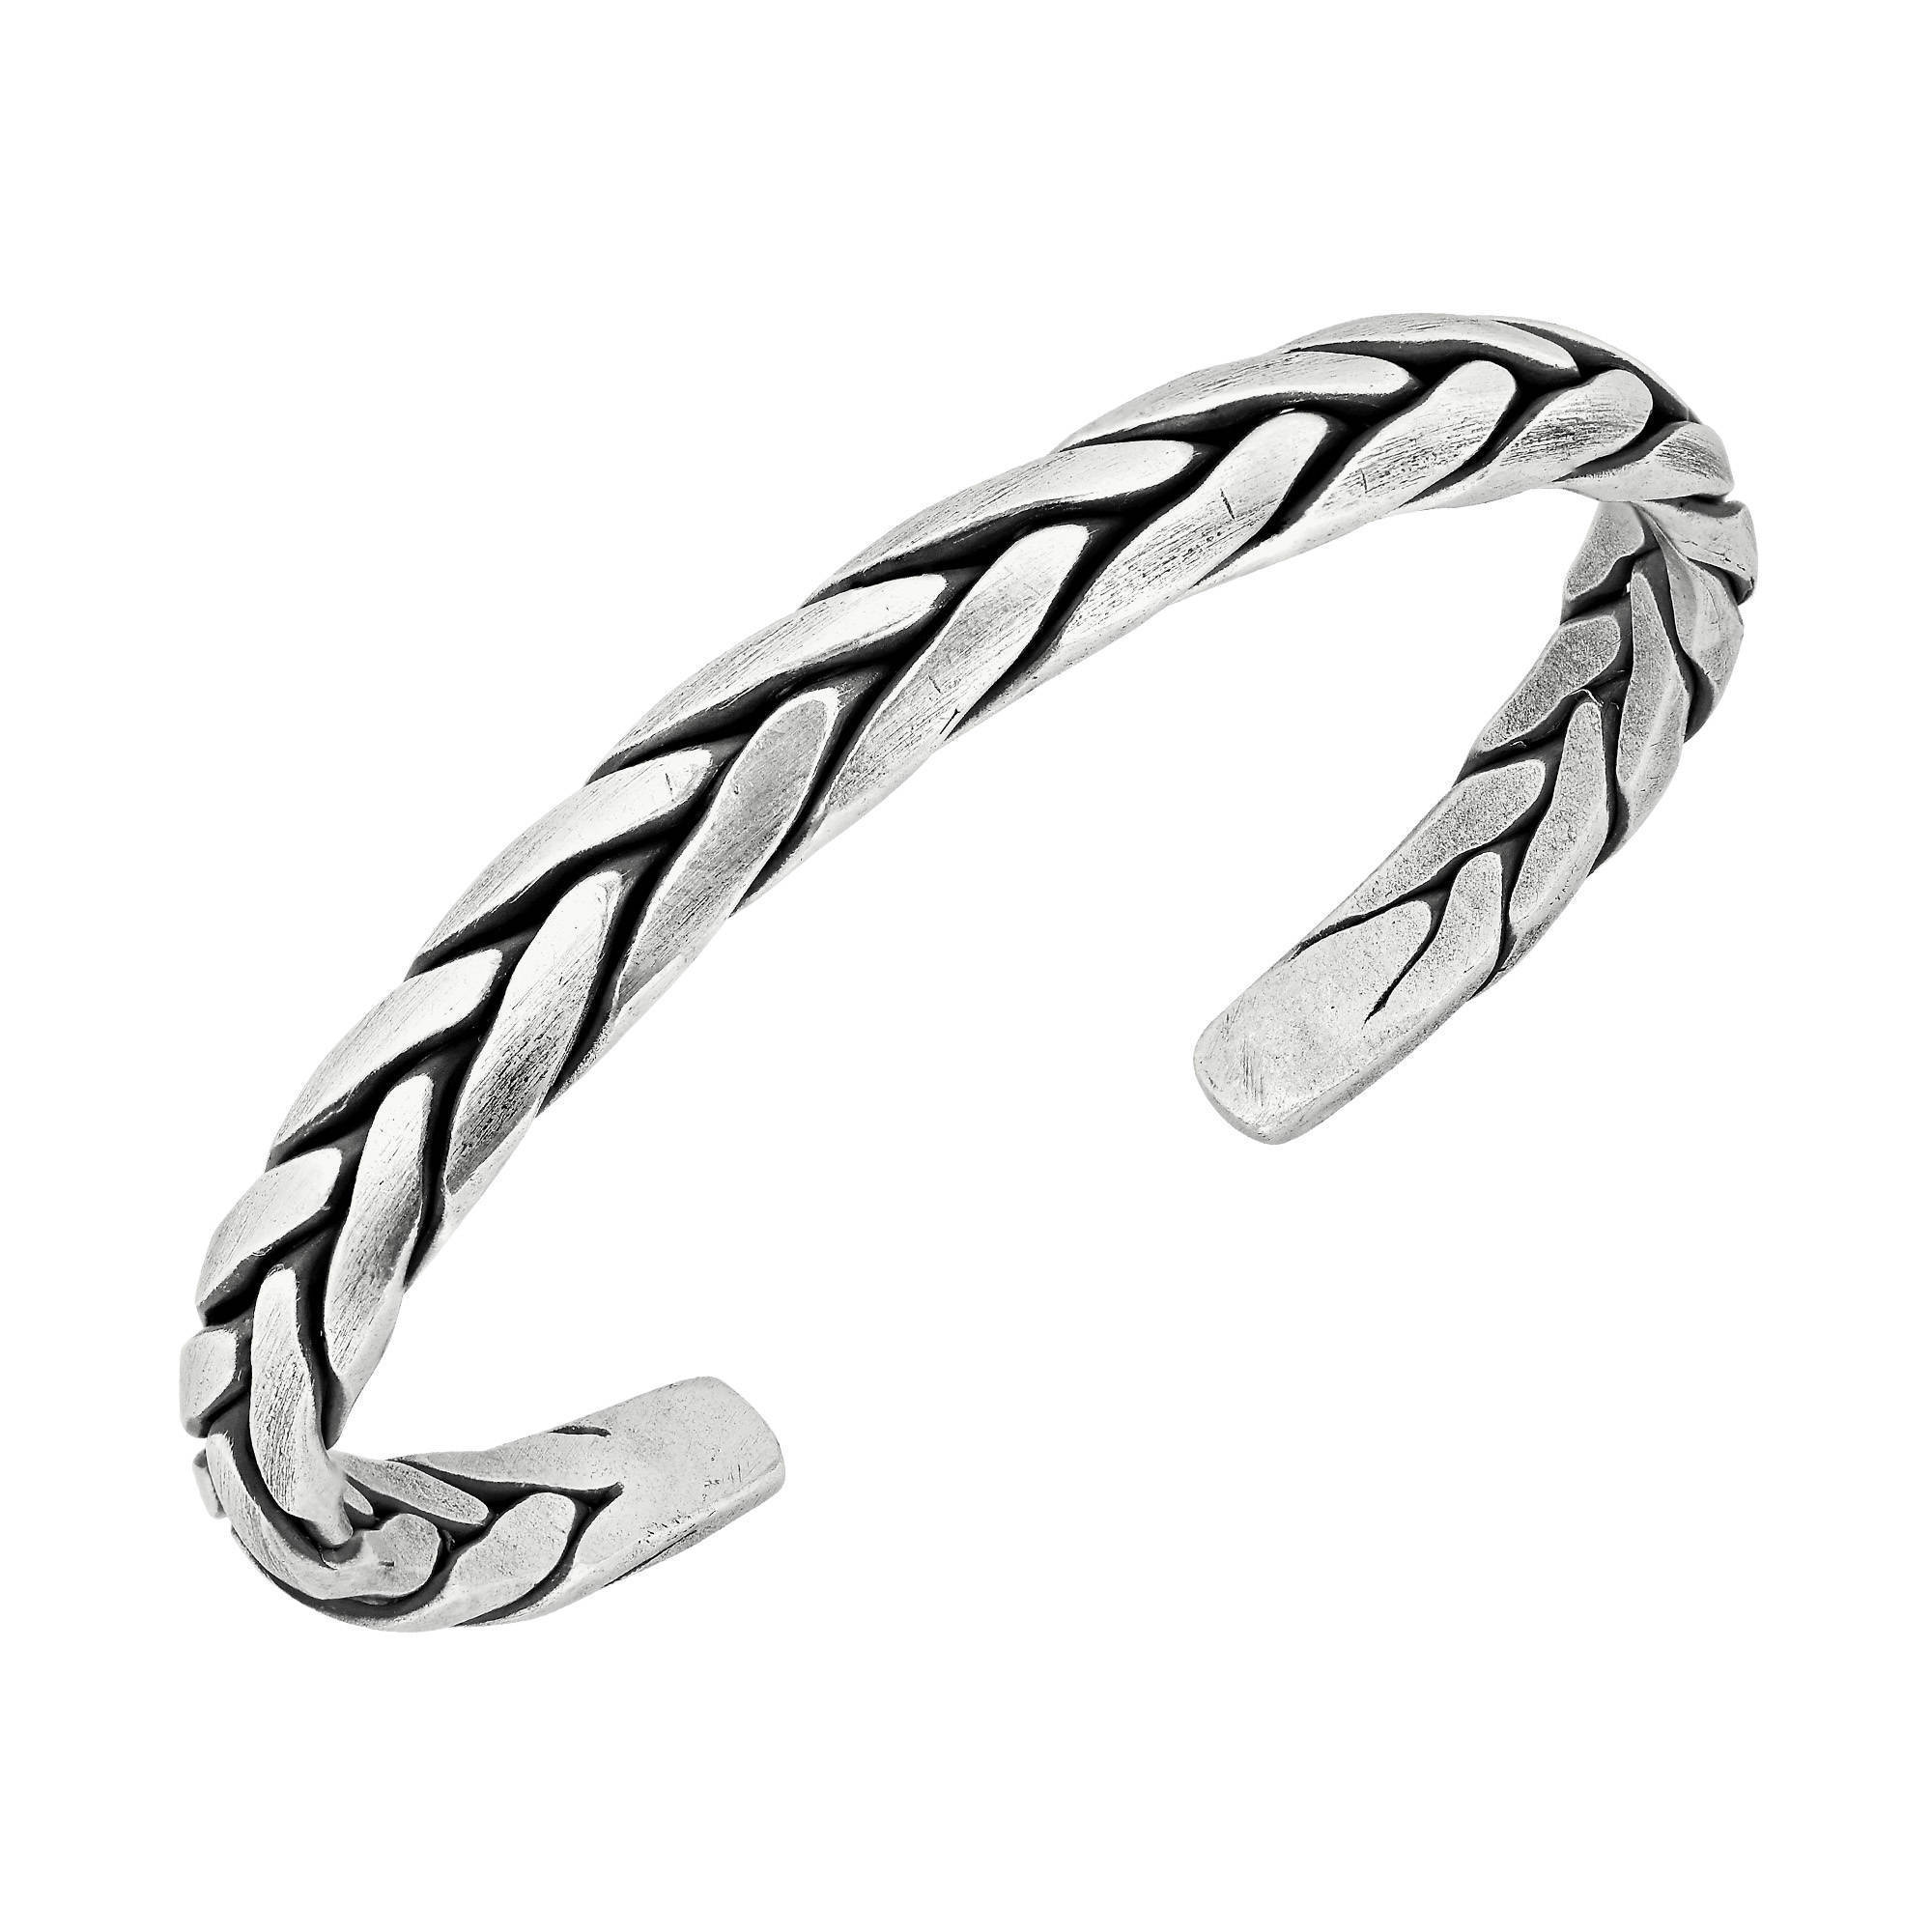 men jewelry grams living pure bracelet hand items title for information qatar silver